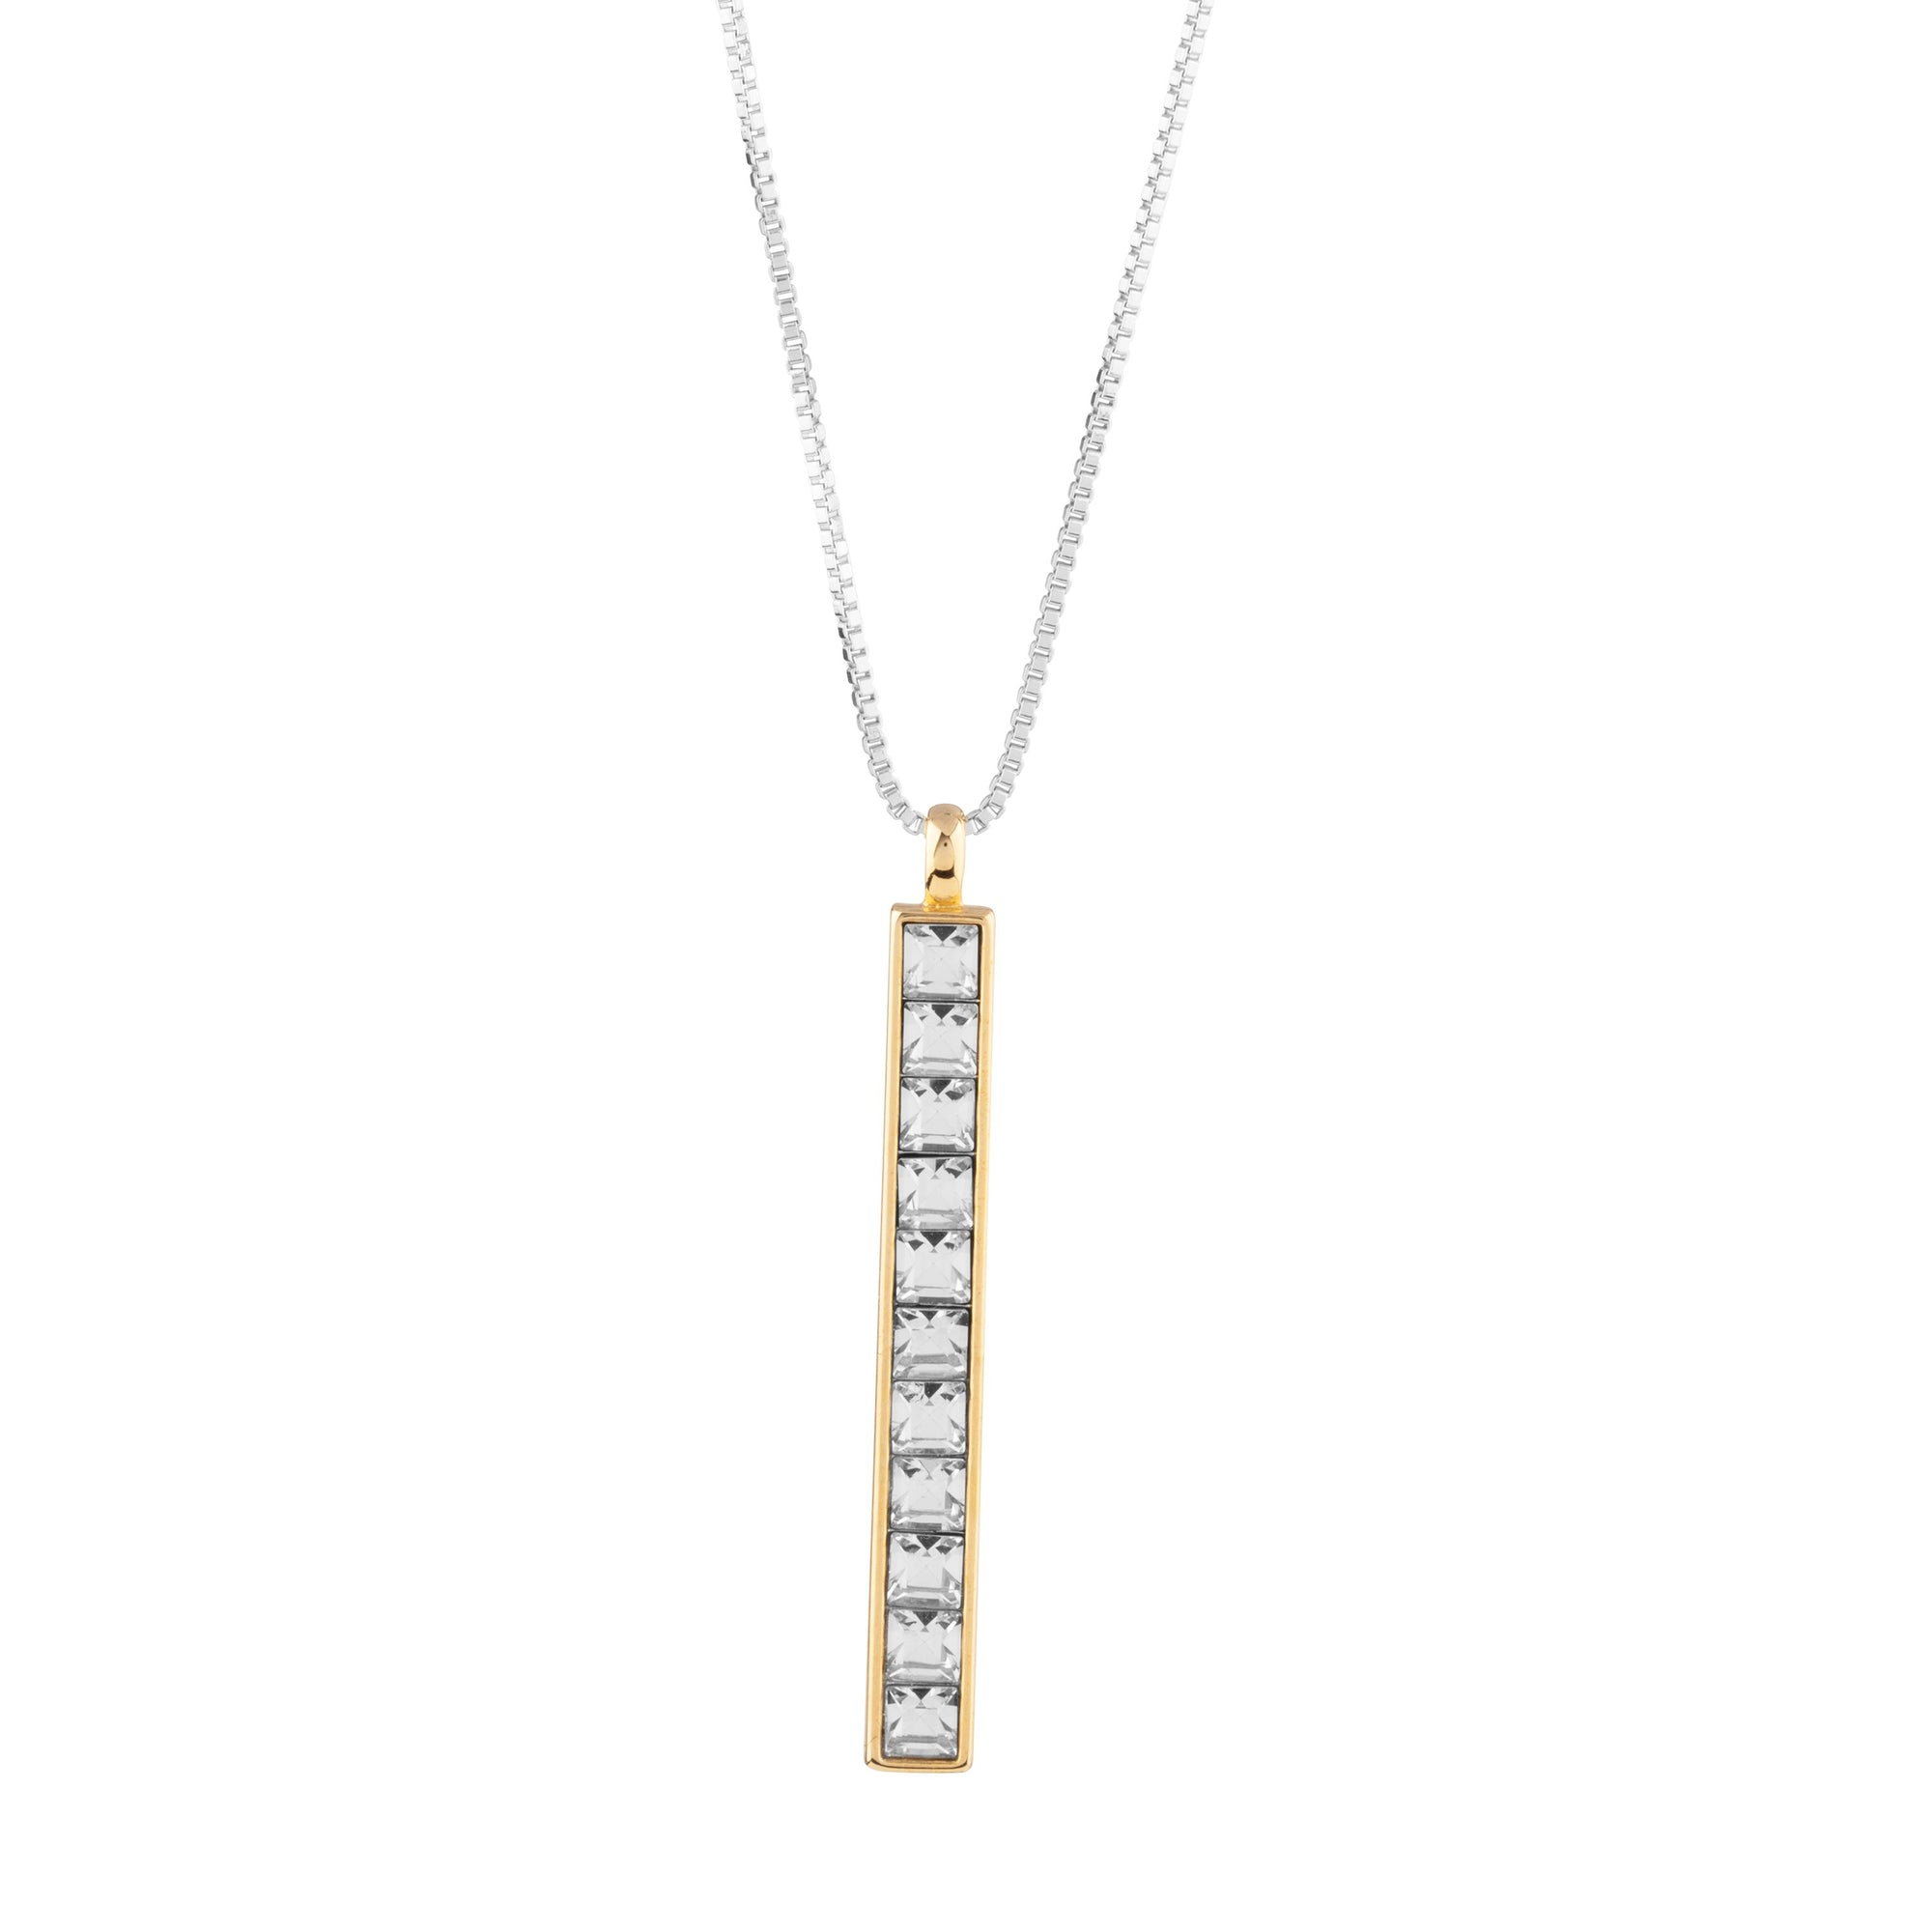 MOMA NECKLACE TWO TONES CRYSTAL NECKLACE - FOREVER CRYSTALS FOREVER